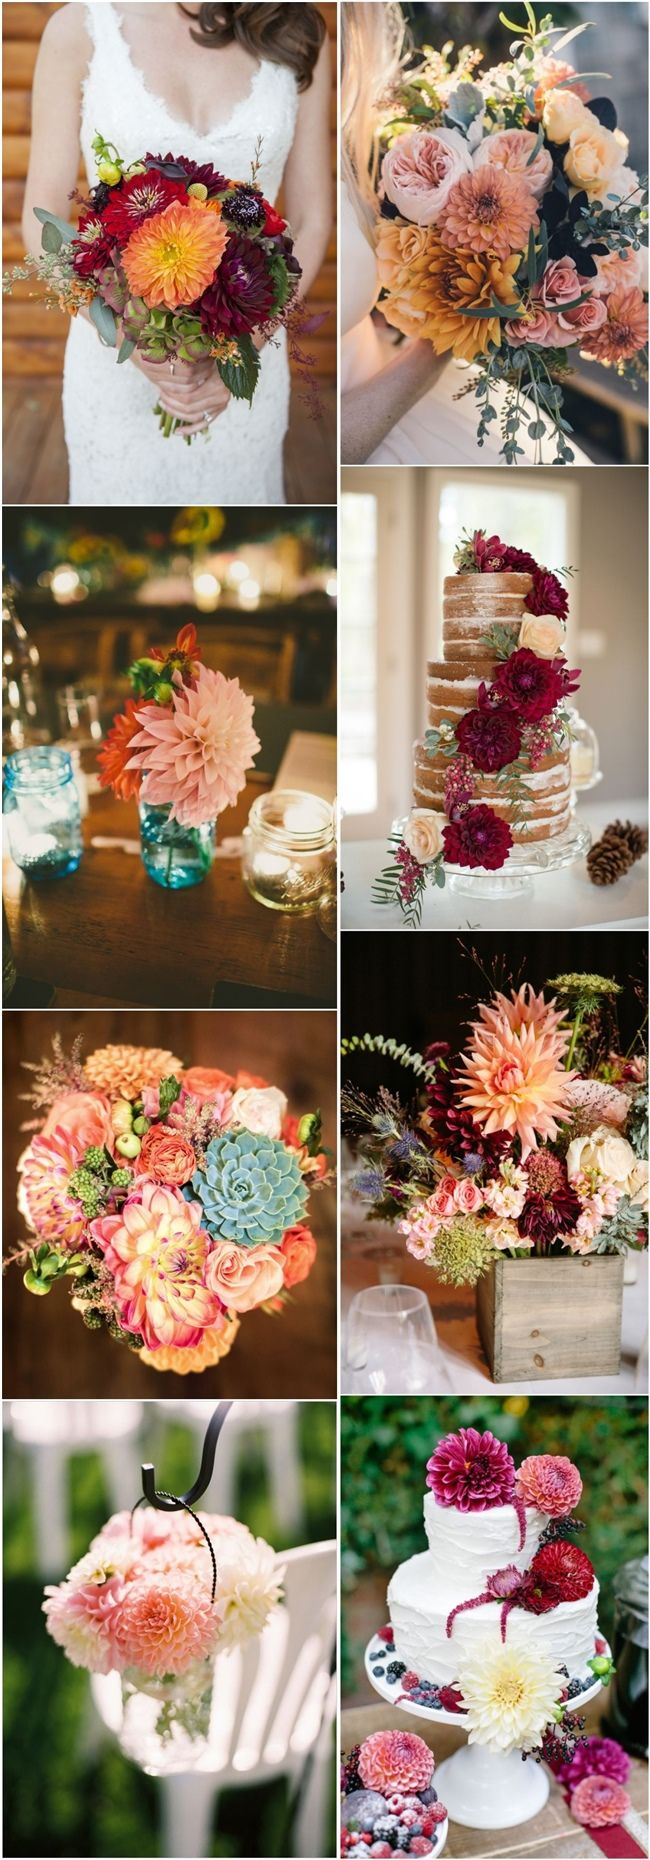 dahlia wedding ideas- wedding flower ideas see more: http://www.deerpearlflowers.com/40-dahlias-wedding-bouquets-and-cakes/